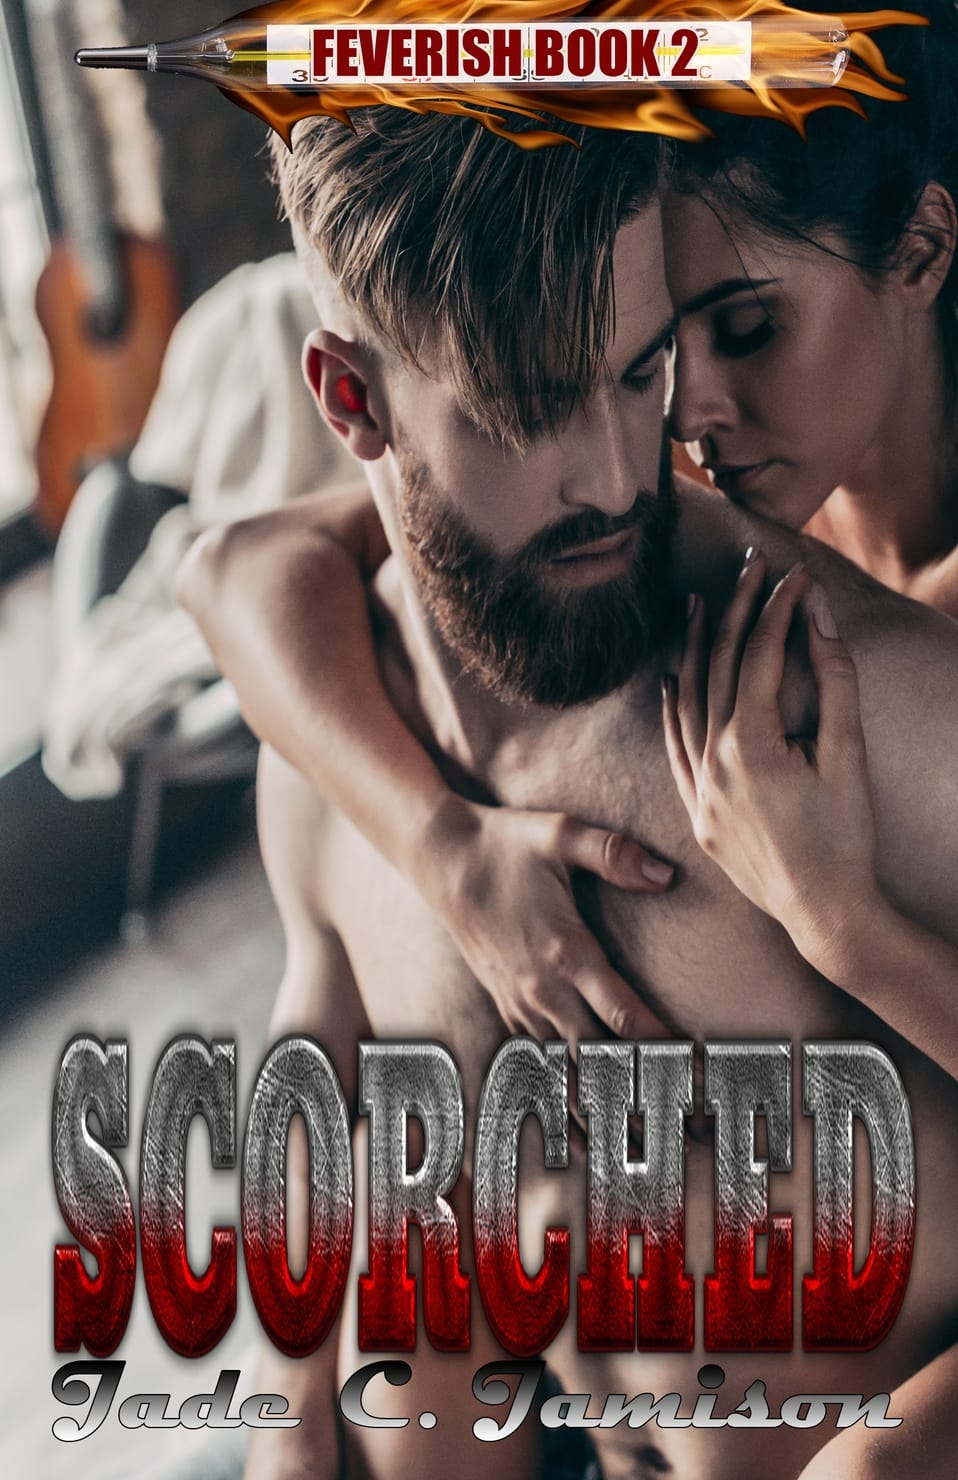 Cover Reveal for SCORCHED (Feverish #2)